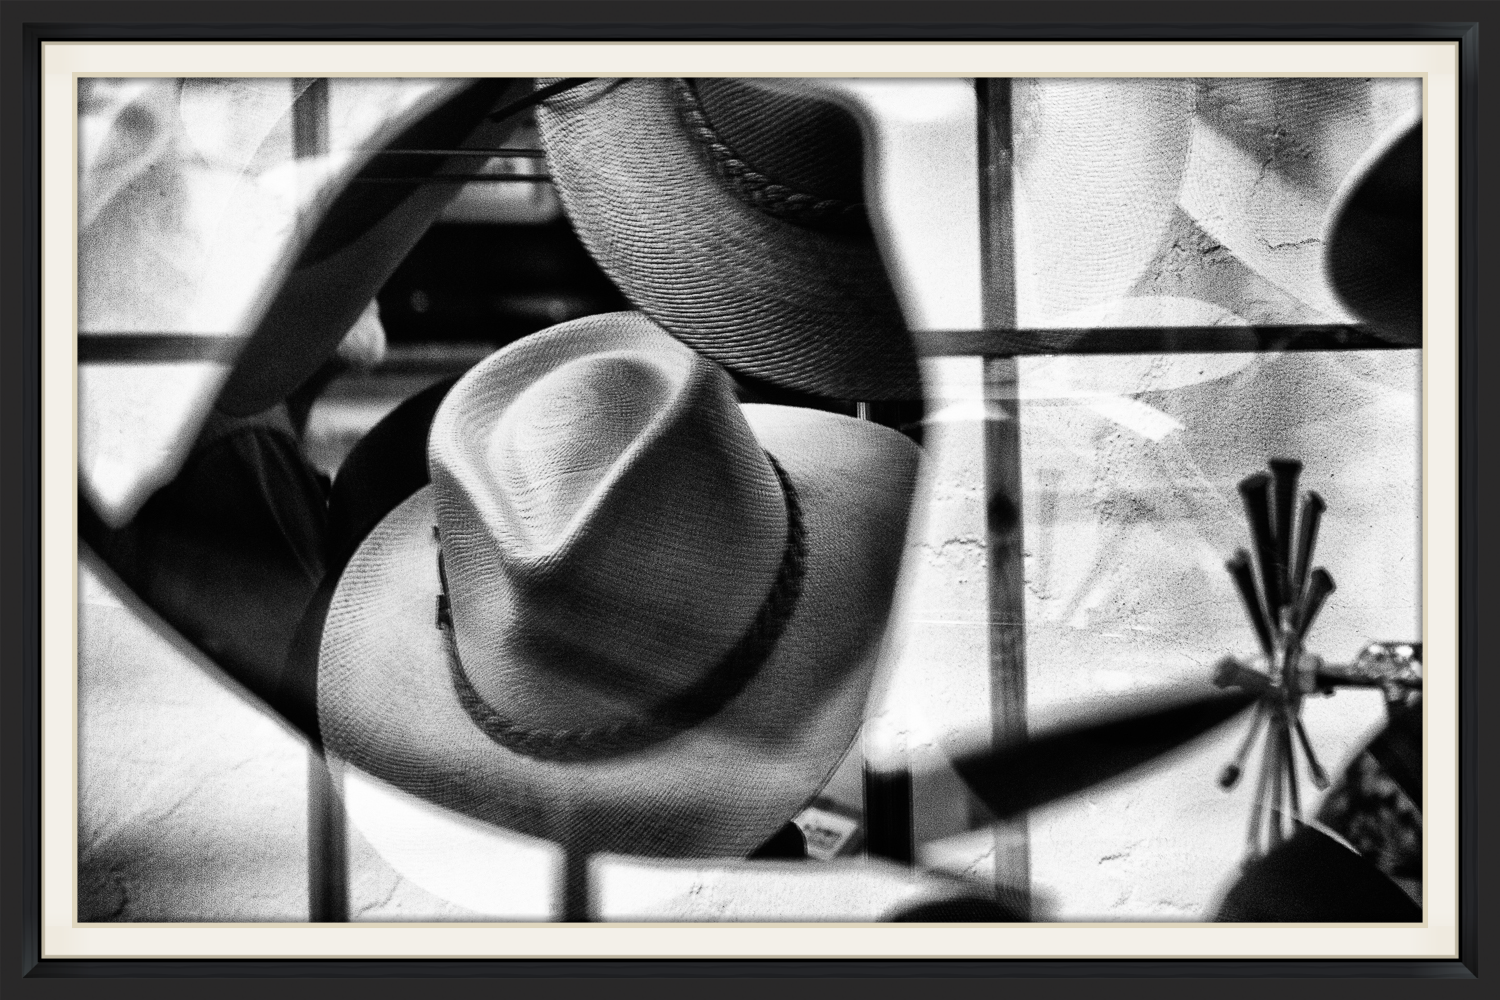 The Man's Hat Shop, Albuquerque, NM